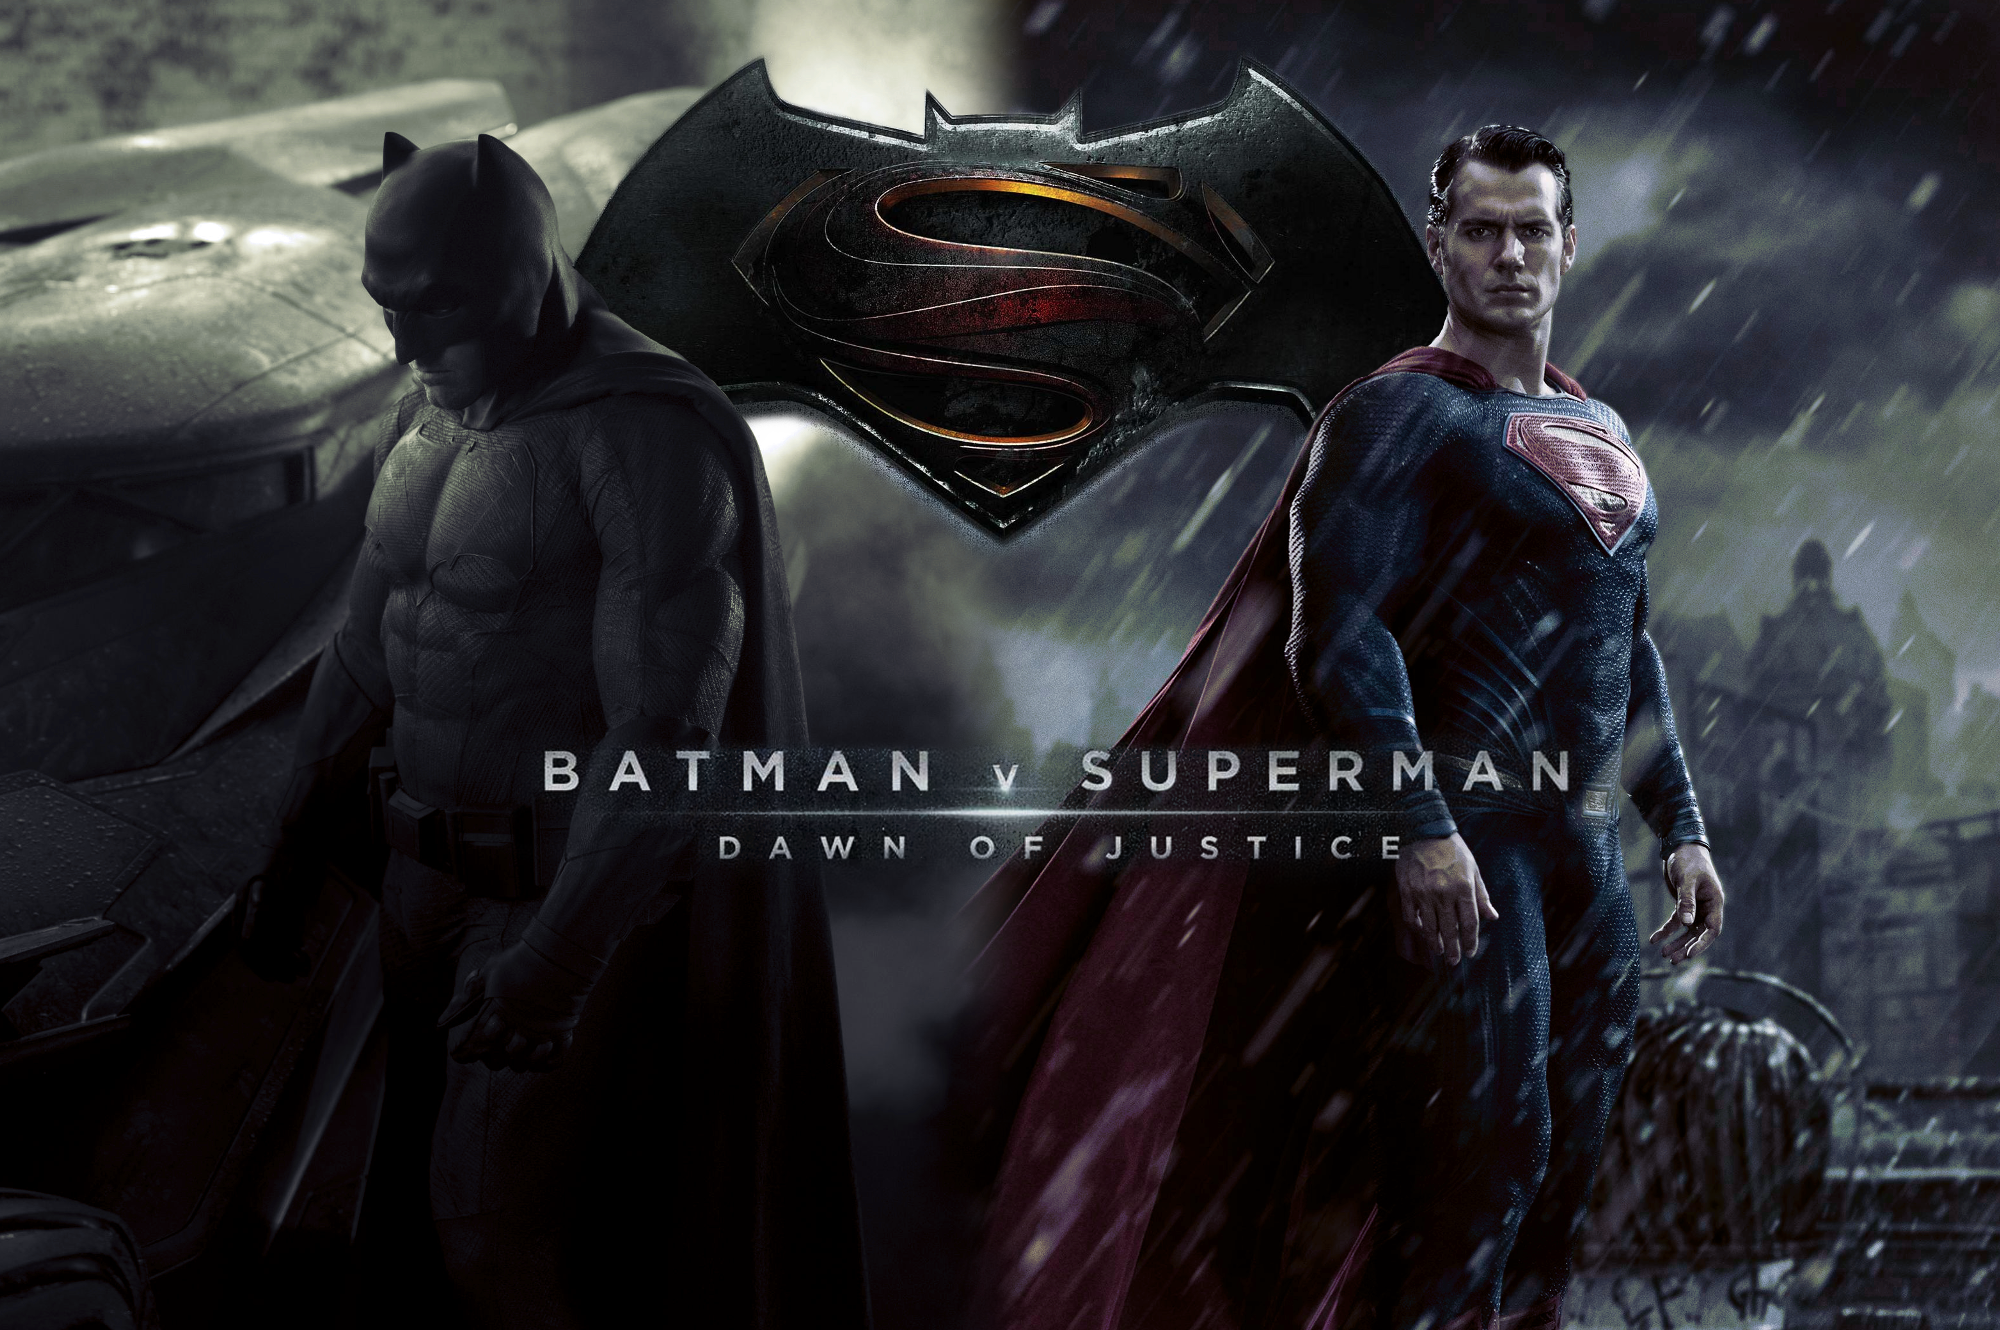 Photo of Stunning. Triumphant. Perfection. The Comic-Con 'Batman vs Superman: Dawn of Justice' trailer is out